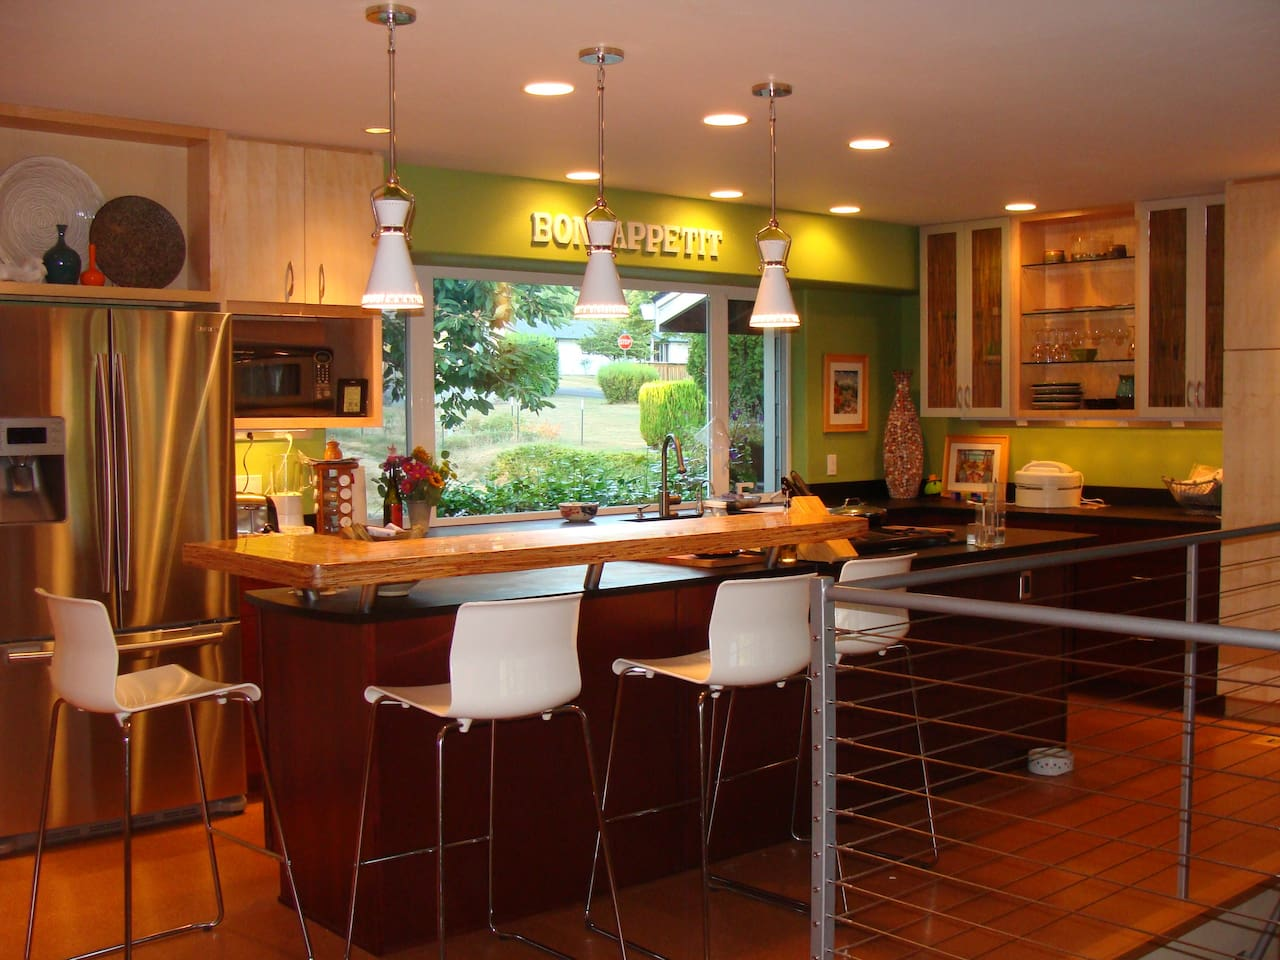 Modern galley-style kitchen with breakfast bar that includes seating for 4.